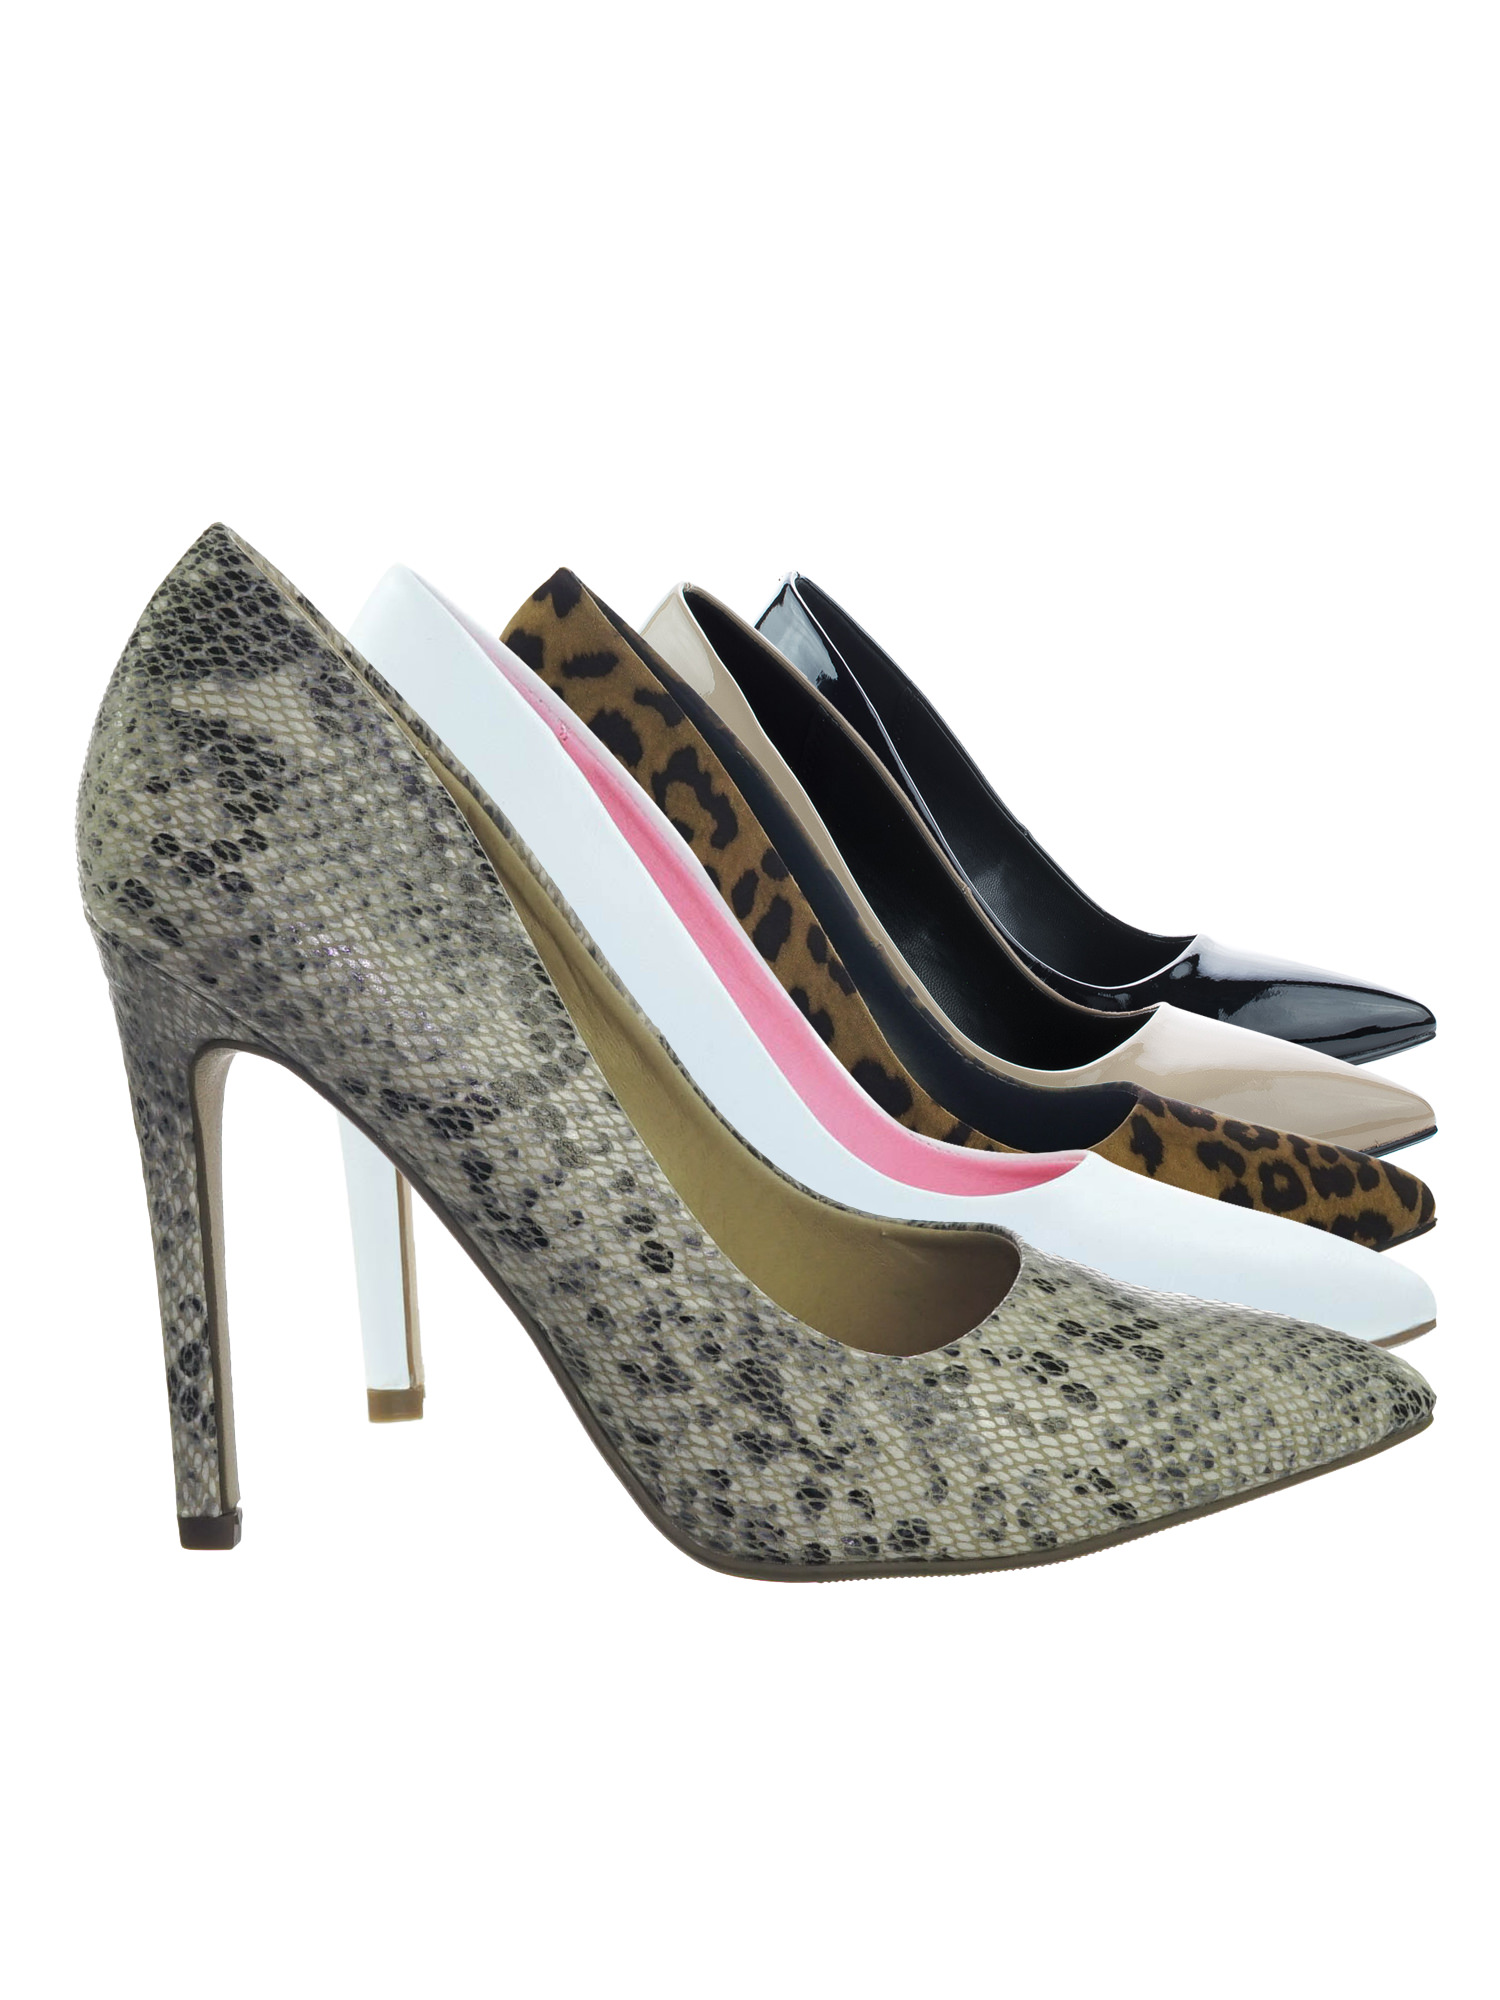 Cindy by Delicious, Women's Classic Style High Heel Stiletto Pointy Toe Slip On Dress Pumps